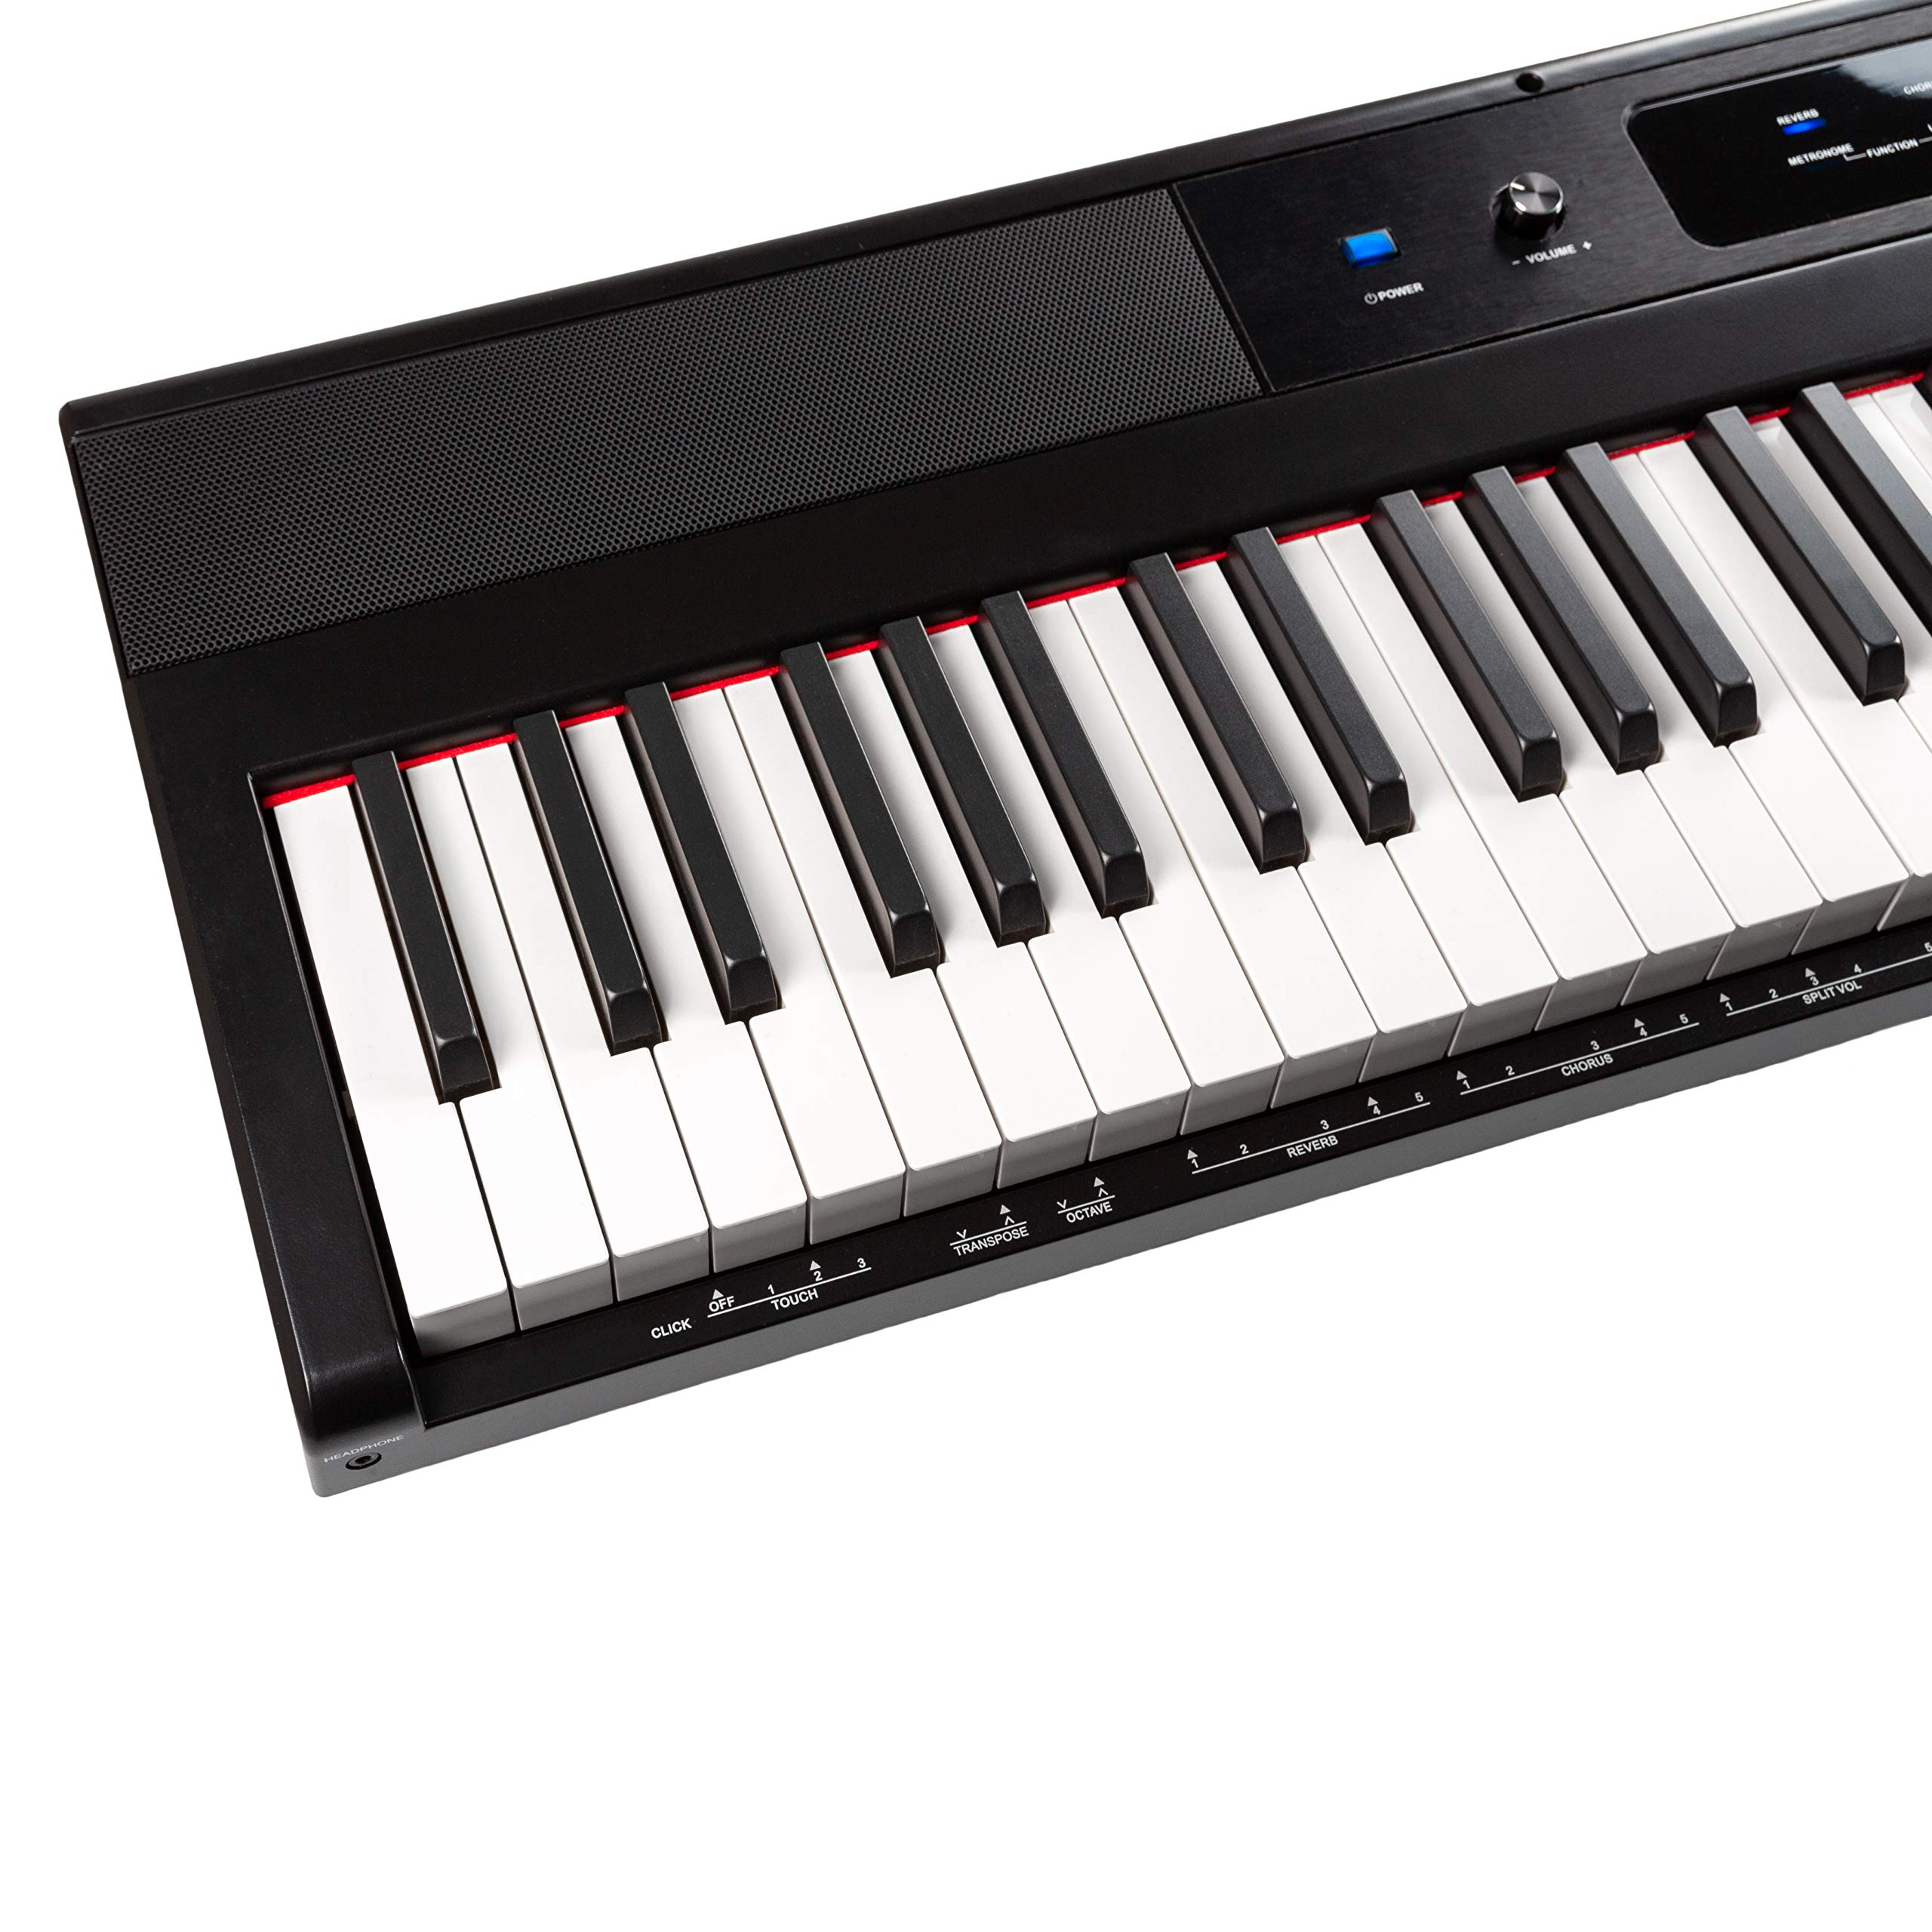 RockJam 88-Key Beginner Digital Piano with Full-Size Semi-Weighted Keys, Power Supply, Simply Piano App Content & Key Note Stickers by RockJam (Image #9)